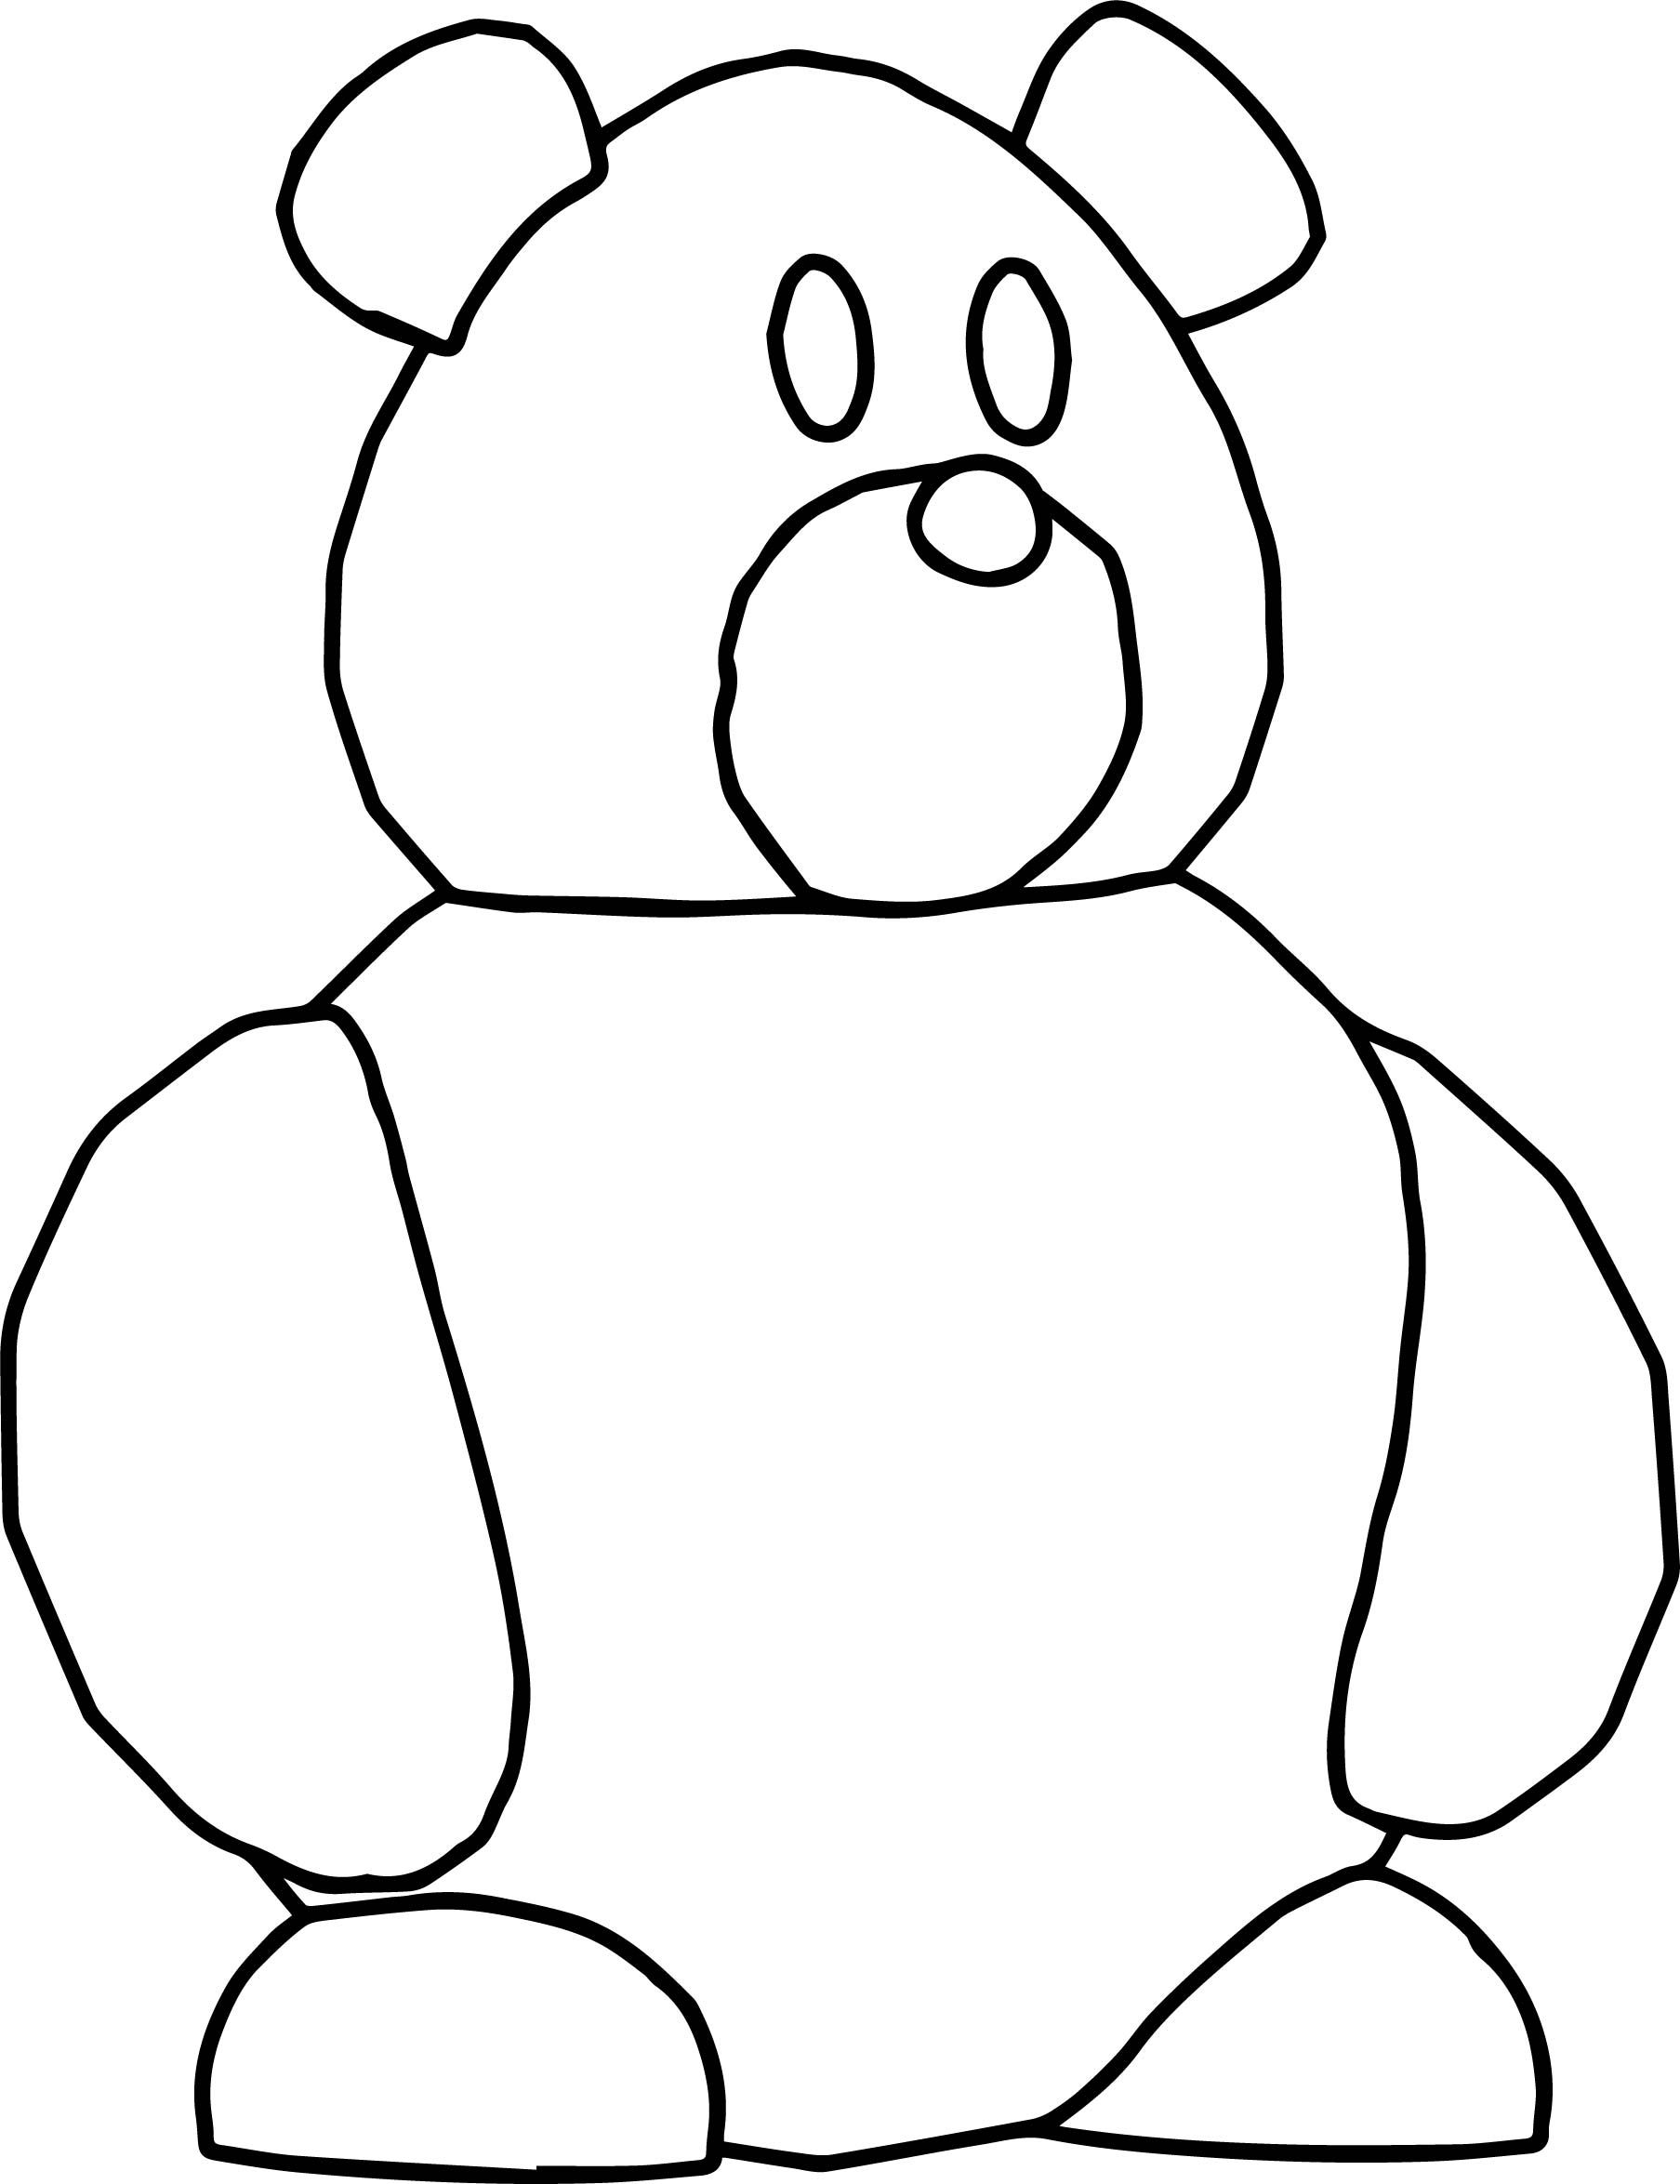 Nice Bear Too Basic Cartoon Coloring Page